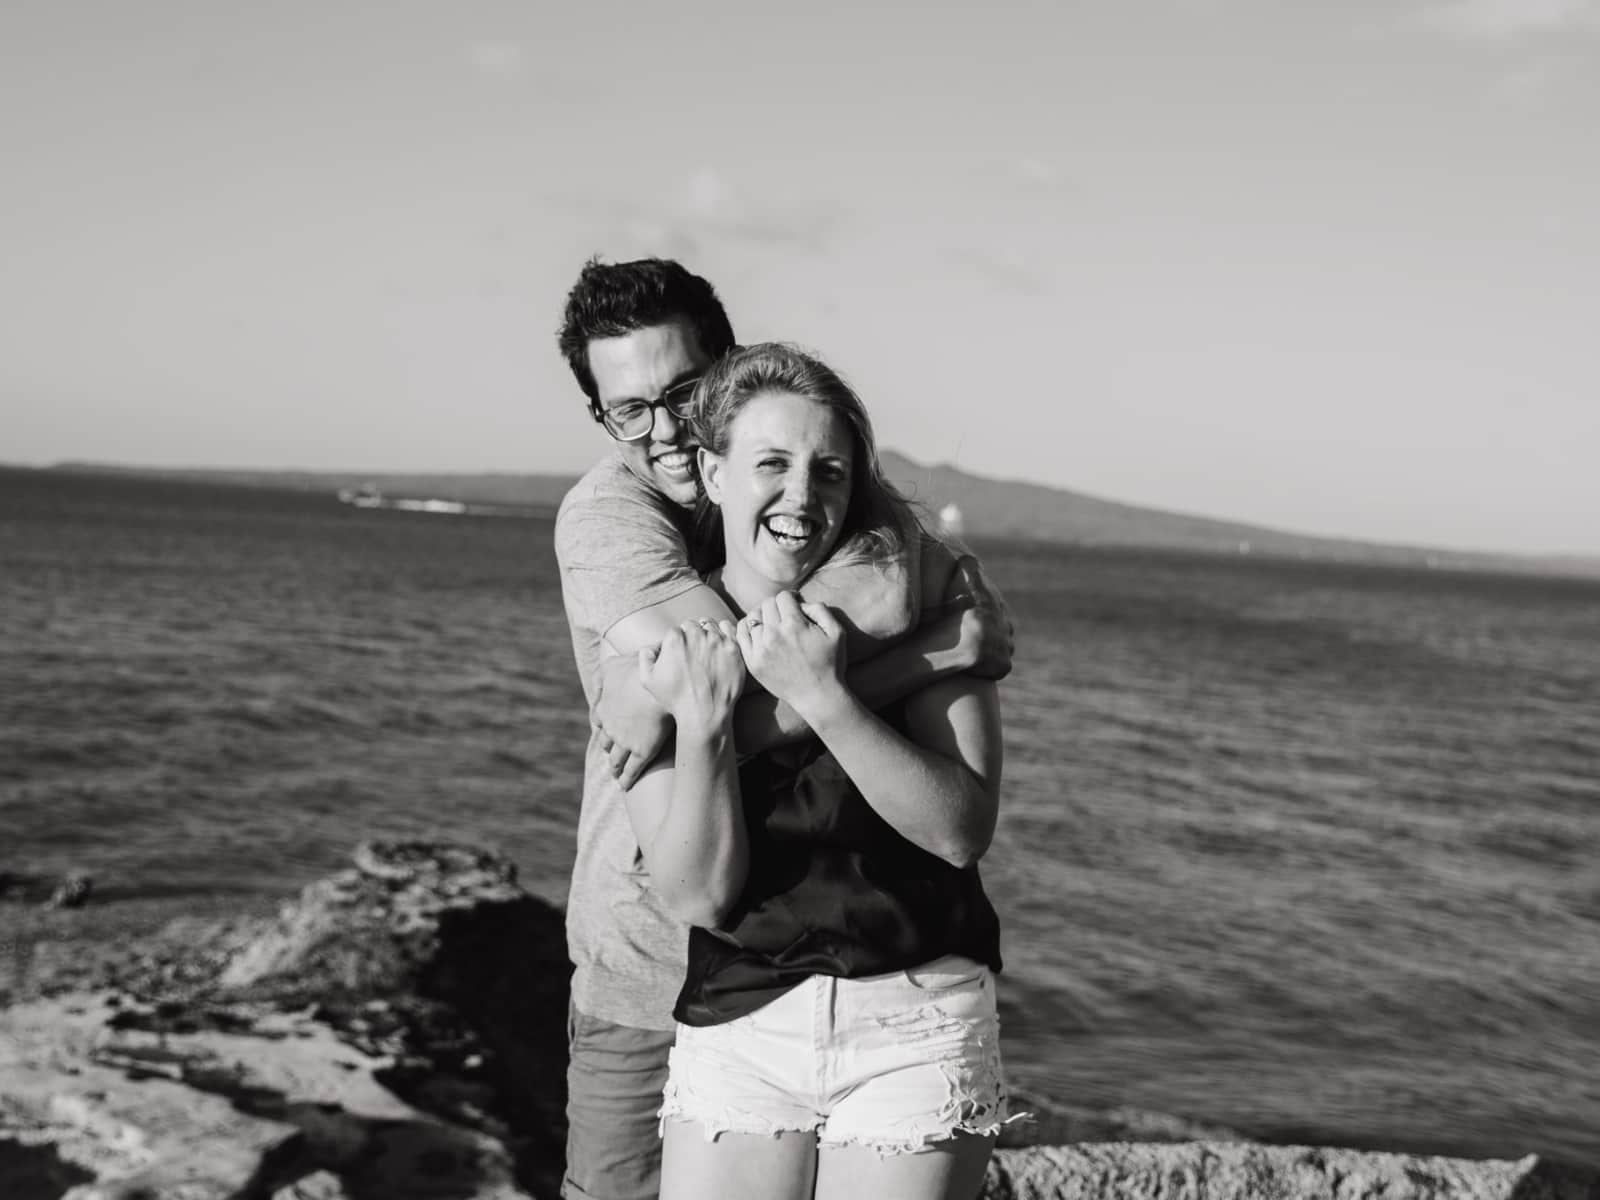 Kelly & Grant from Auckland, New Zealand